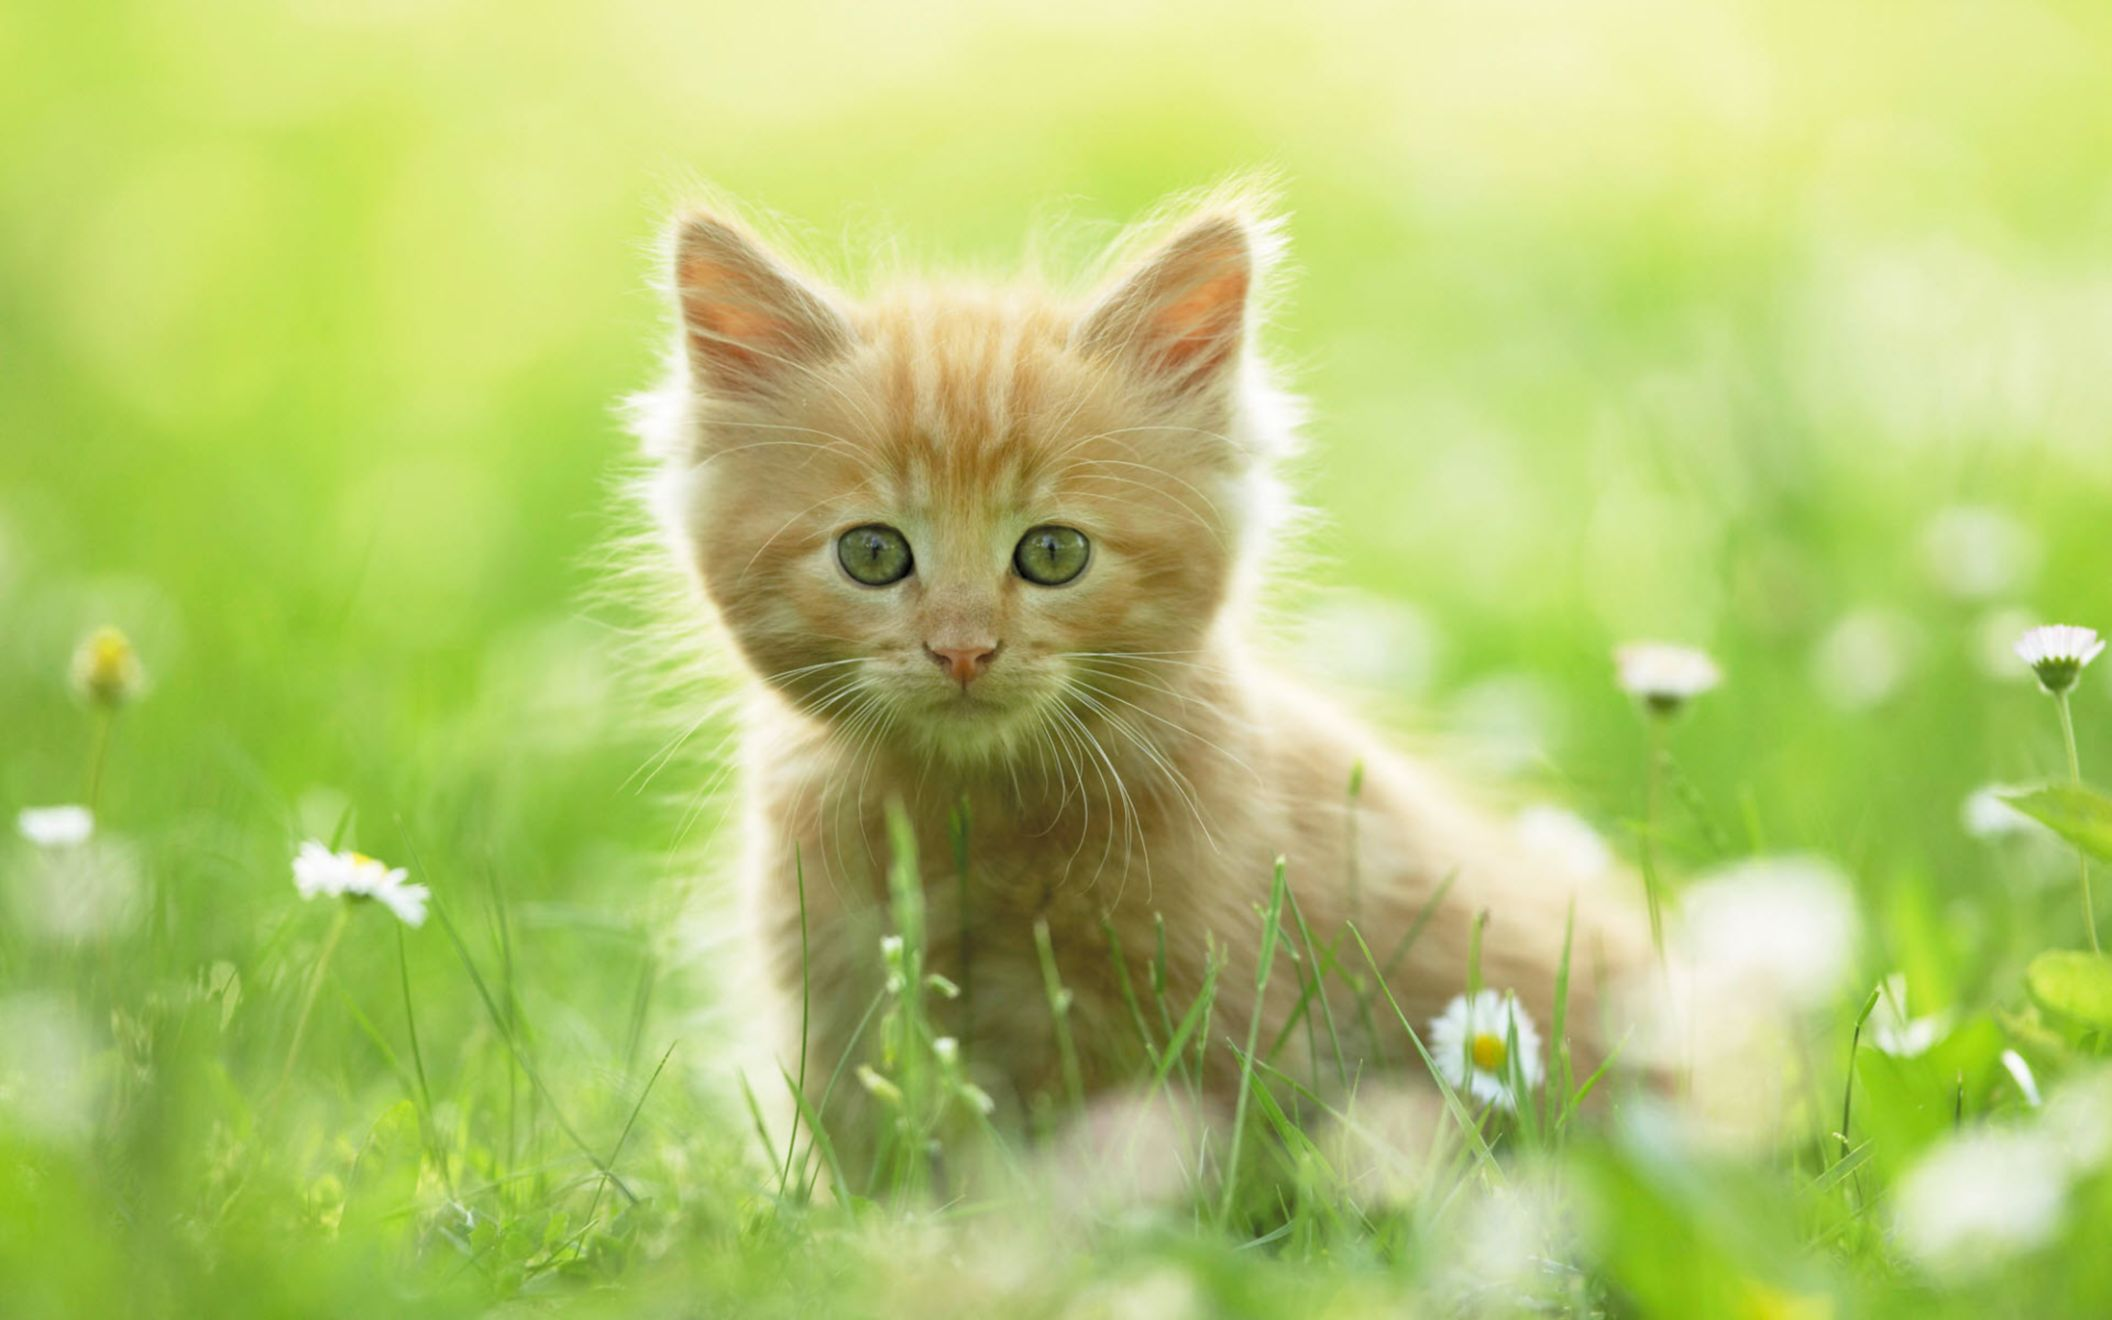 Download free HD Cute Kitten Wide Wallpaper, image